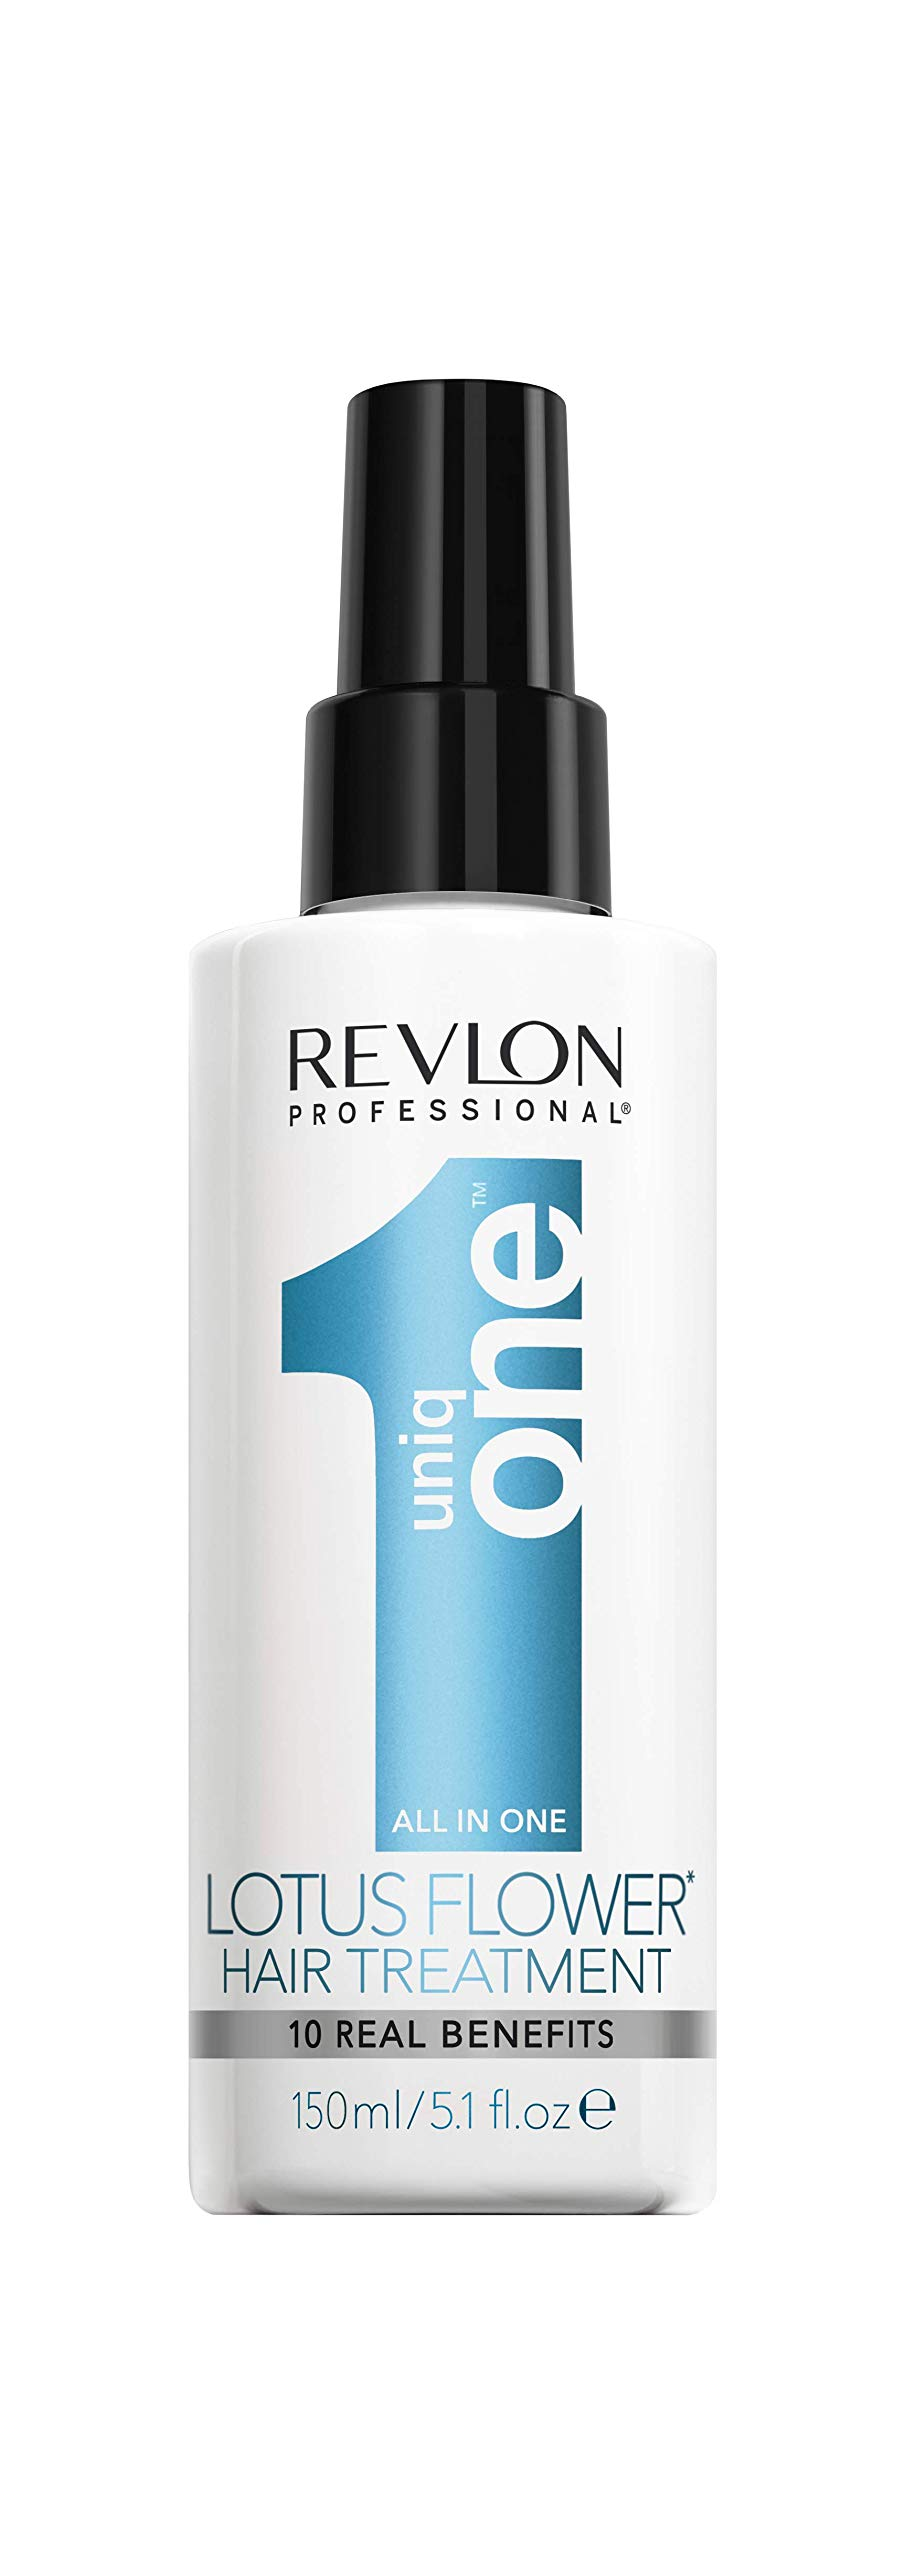 Revlon Uniq One All in One Lotus Flower Hair Treatment 150 ml product image